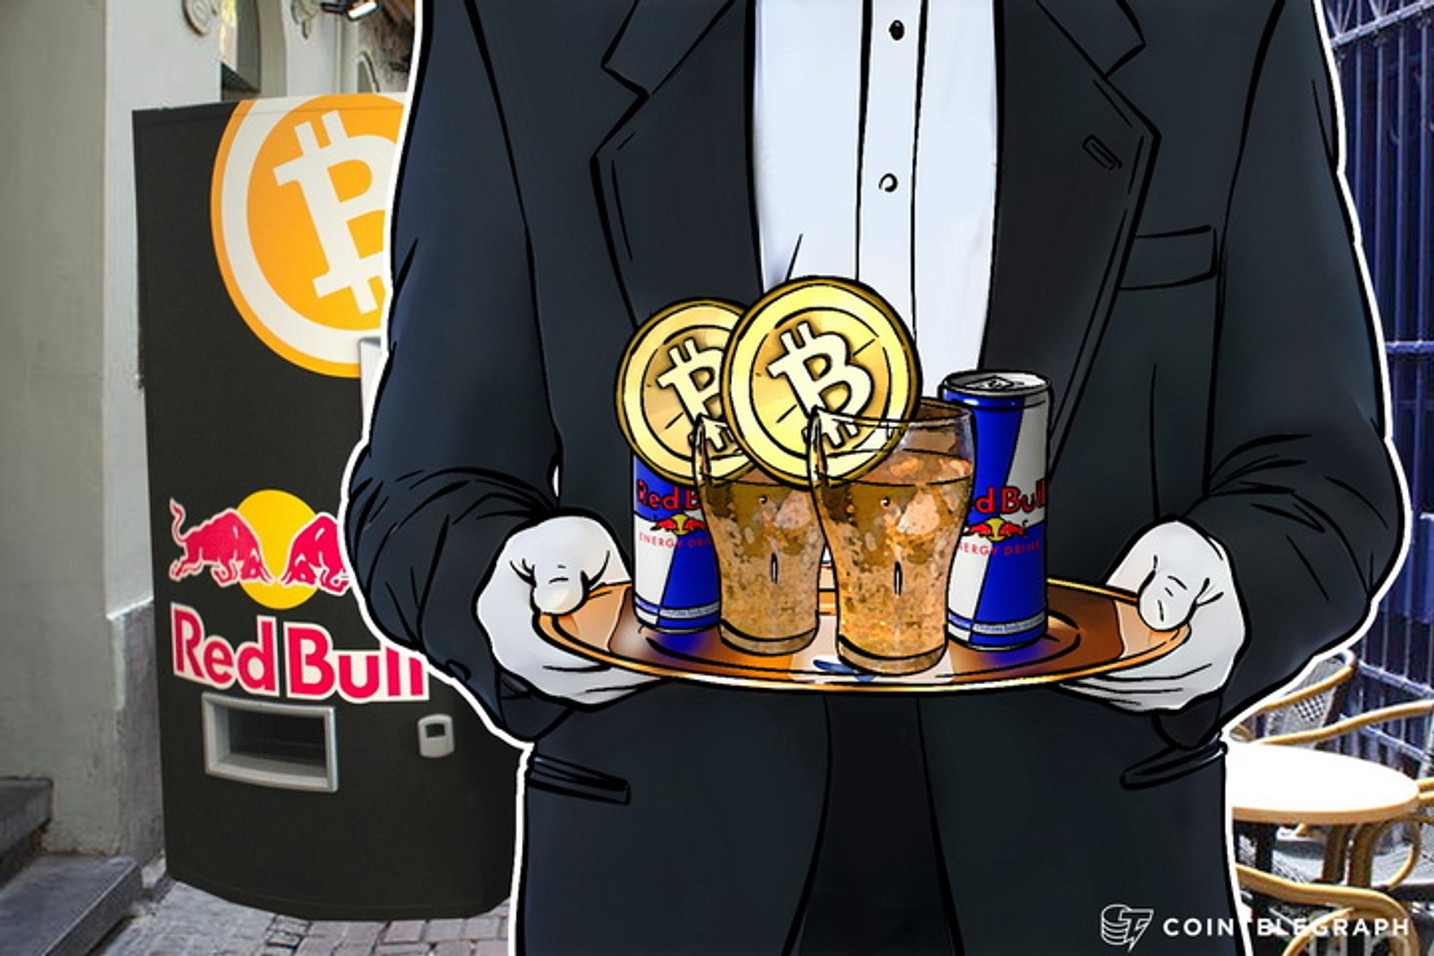 Bitcoin-Only Red Bull Vending Machine Goes To Hackers Congress